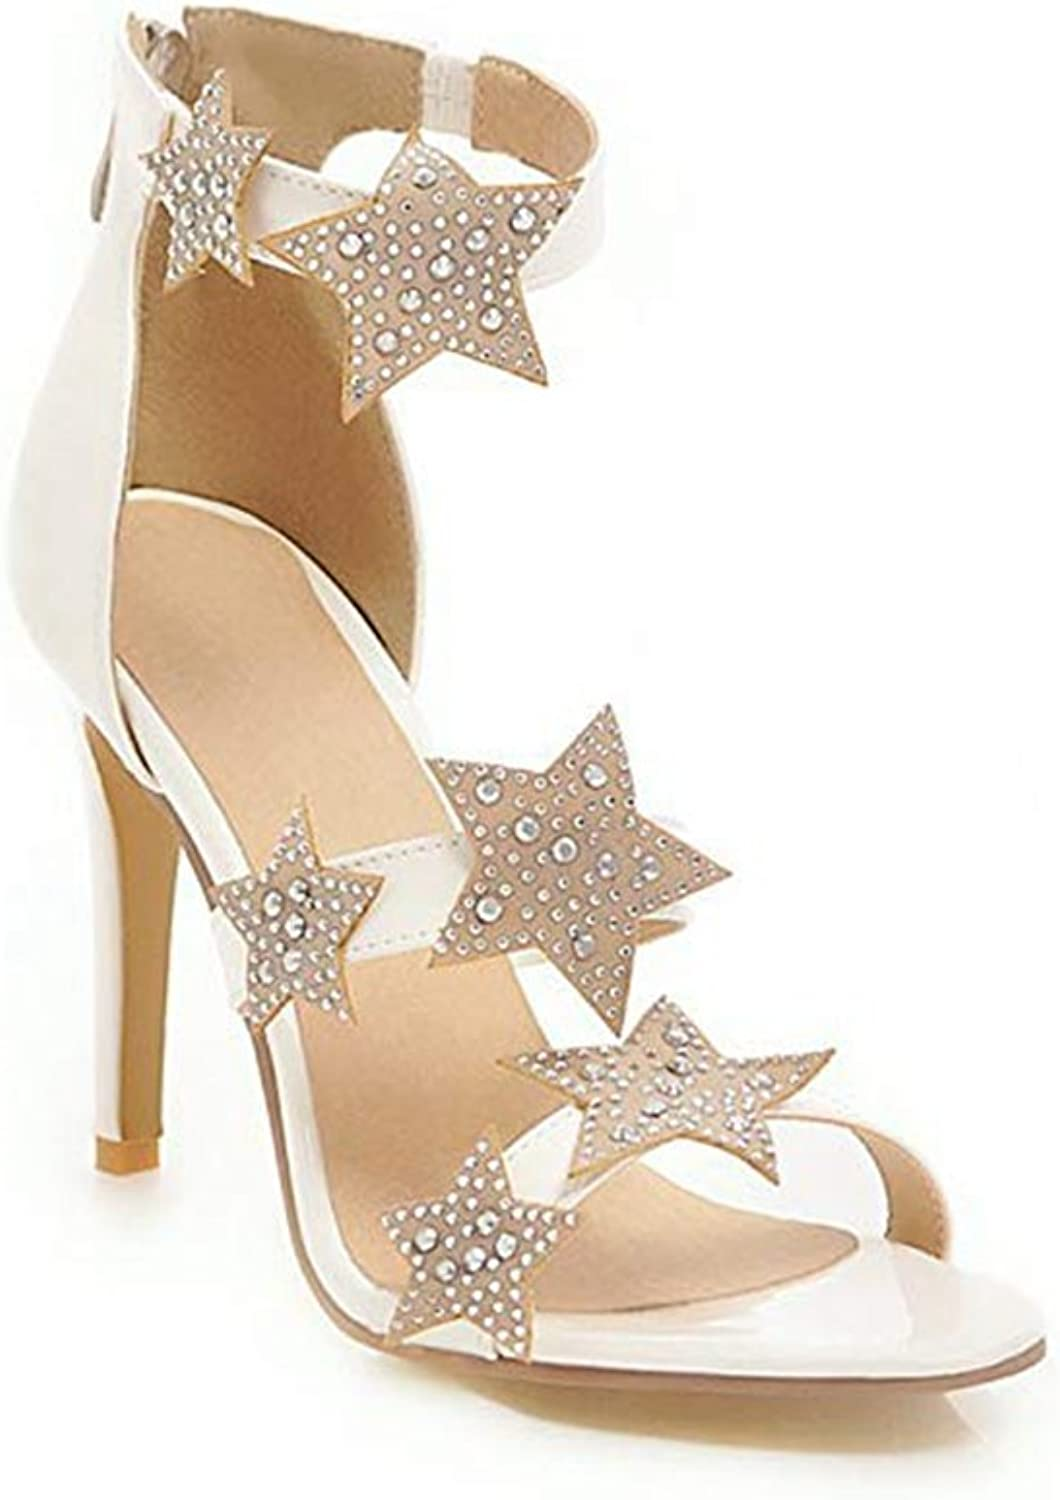 T-JULY Ladies Sexy Stilettos Heel Ankle Strap Stars Pumps Sandals for Women Open Toe Back Zipper Party Dress shoes